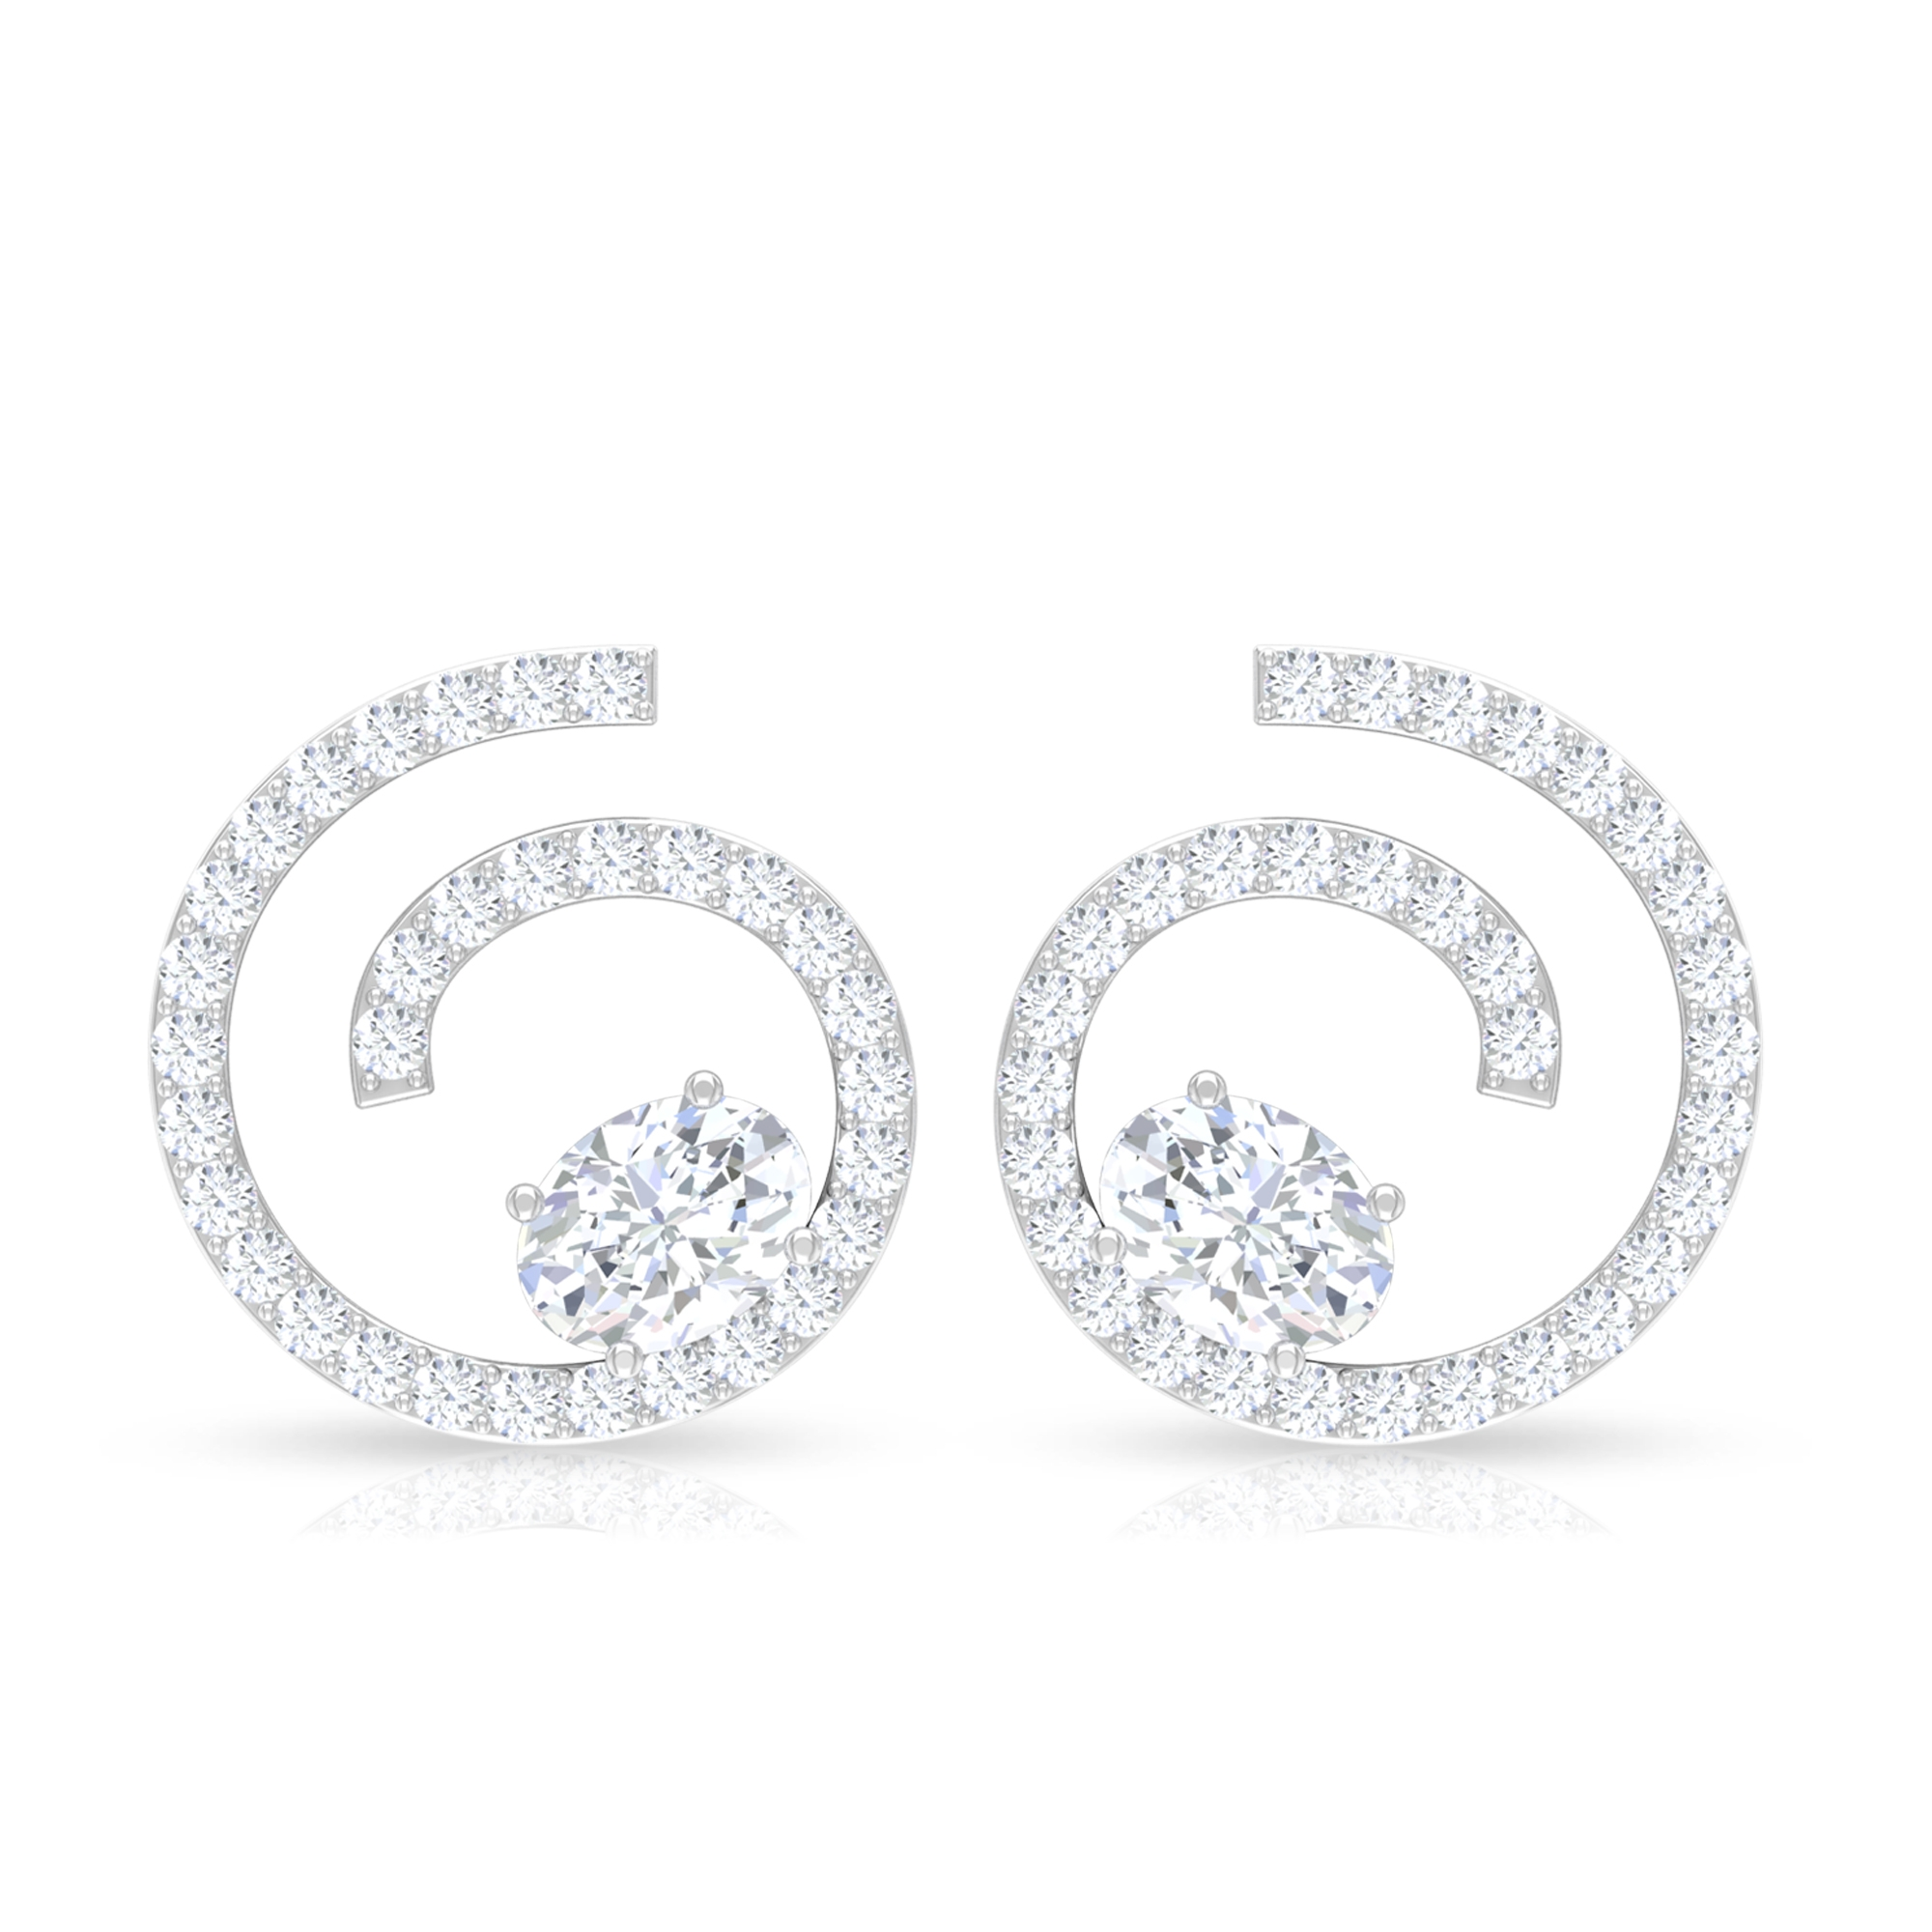 3/4 CT Diamond Swirl Stud Earrings with Oval Cut Solitaire